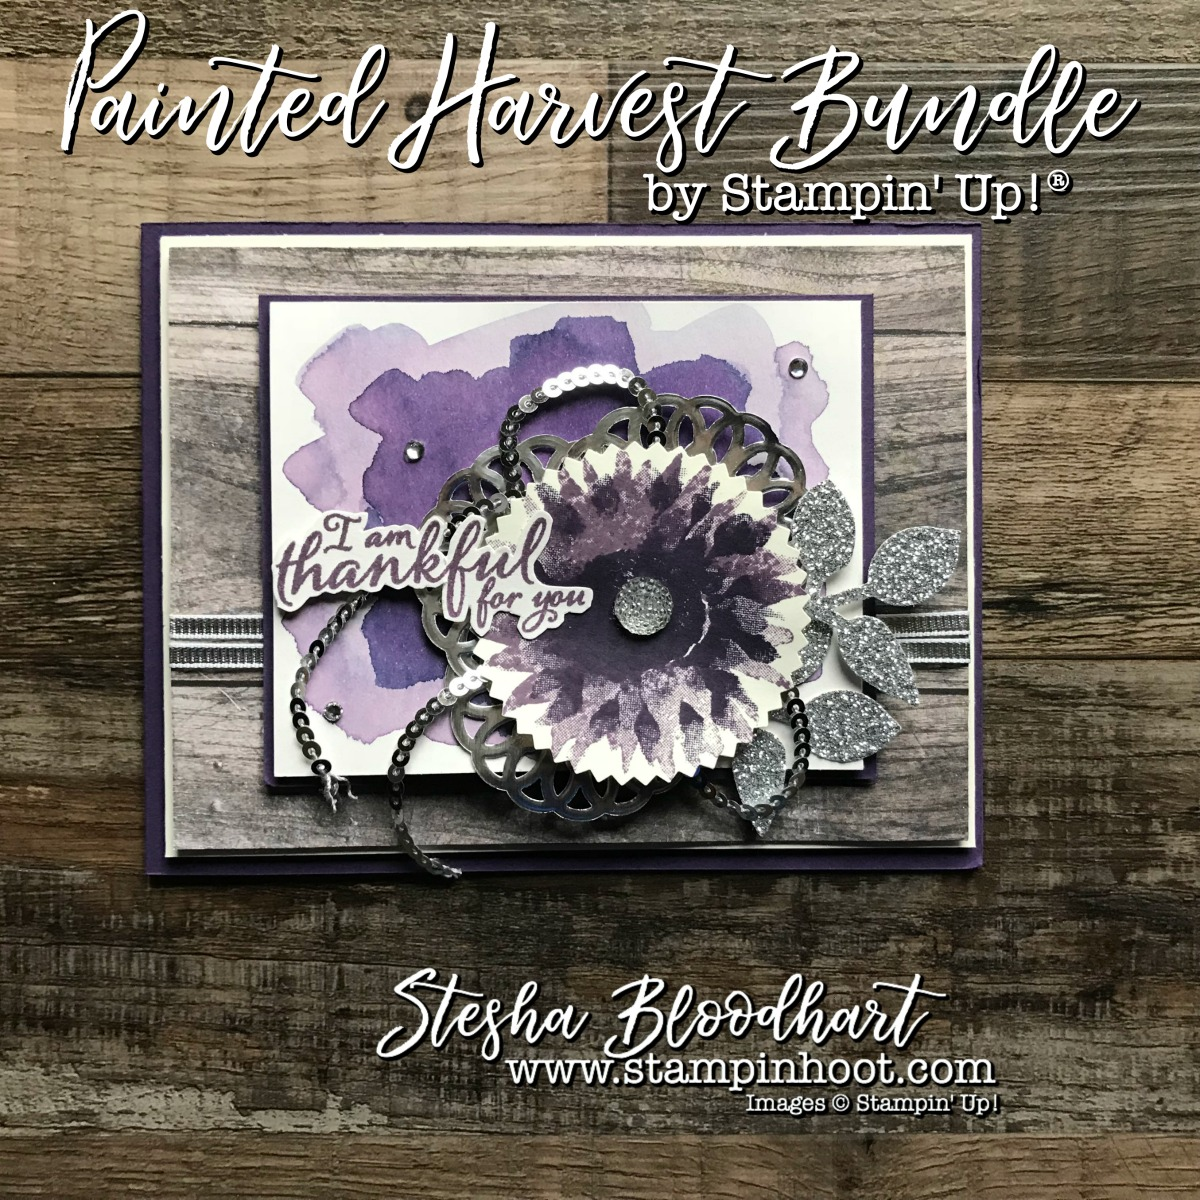 Painted Harvest Bundle by Stampin' Up! Takes a Spin with Elegant Eggplant and Sparkly Silver. Details at Stampin' Hoot! Stesha Bloodhart #paintedharvest #eleganteggplant